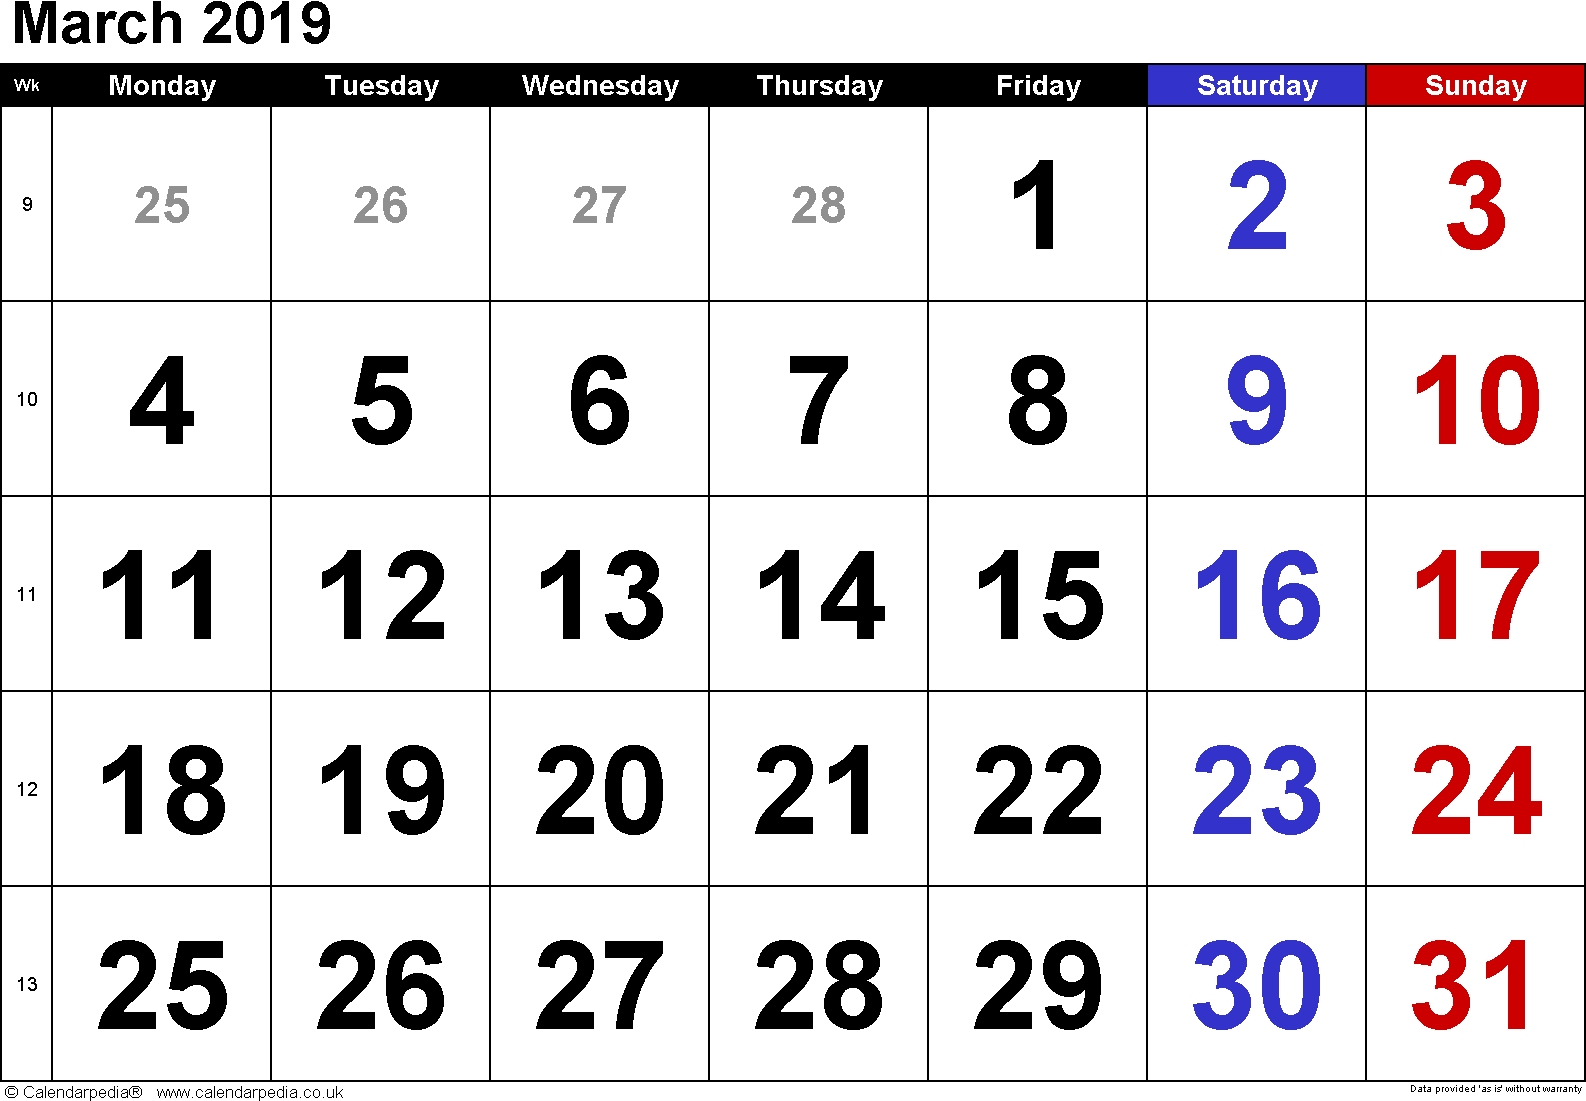 Download Printable March 2019 Calendar With Holidays | Calendar 2018 March 7 2019 Calendar